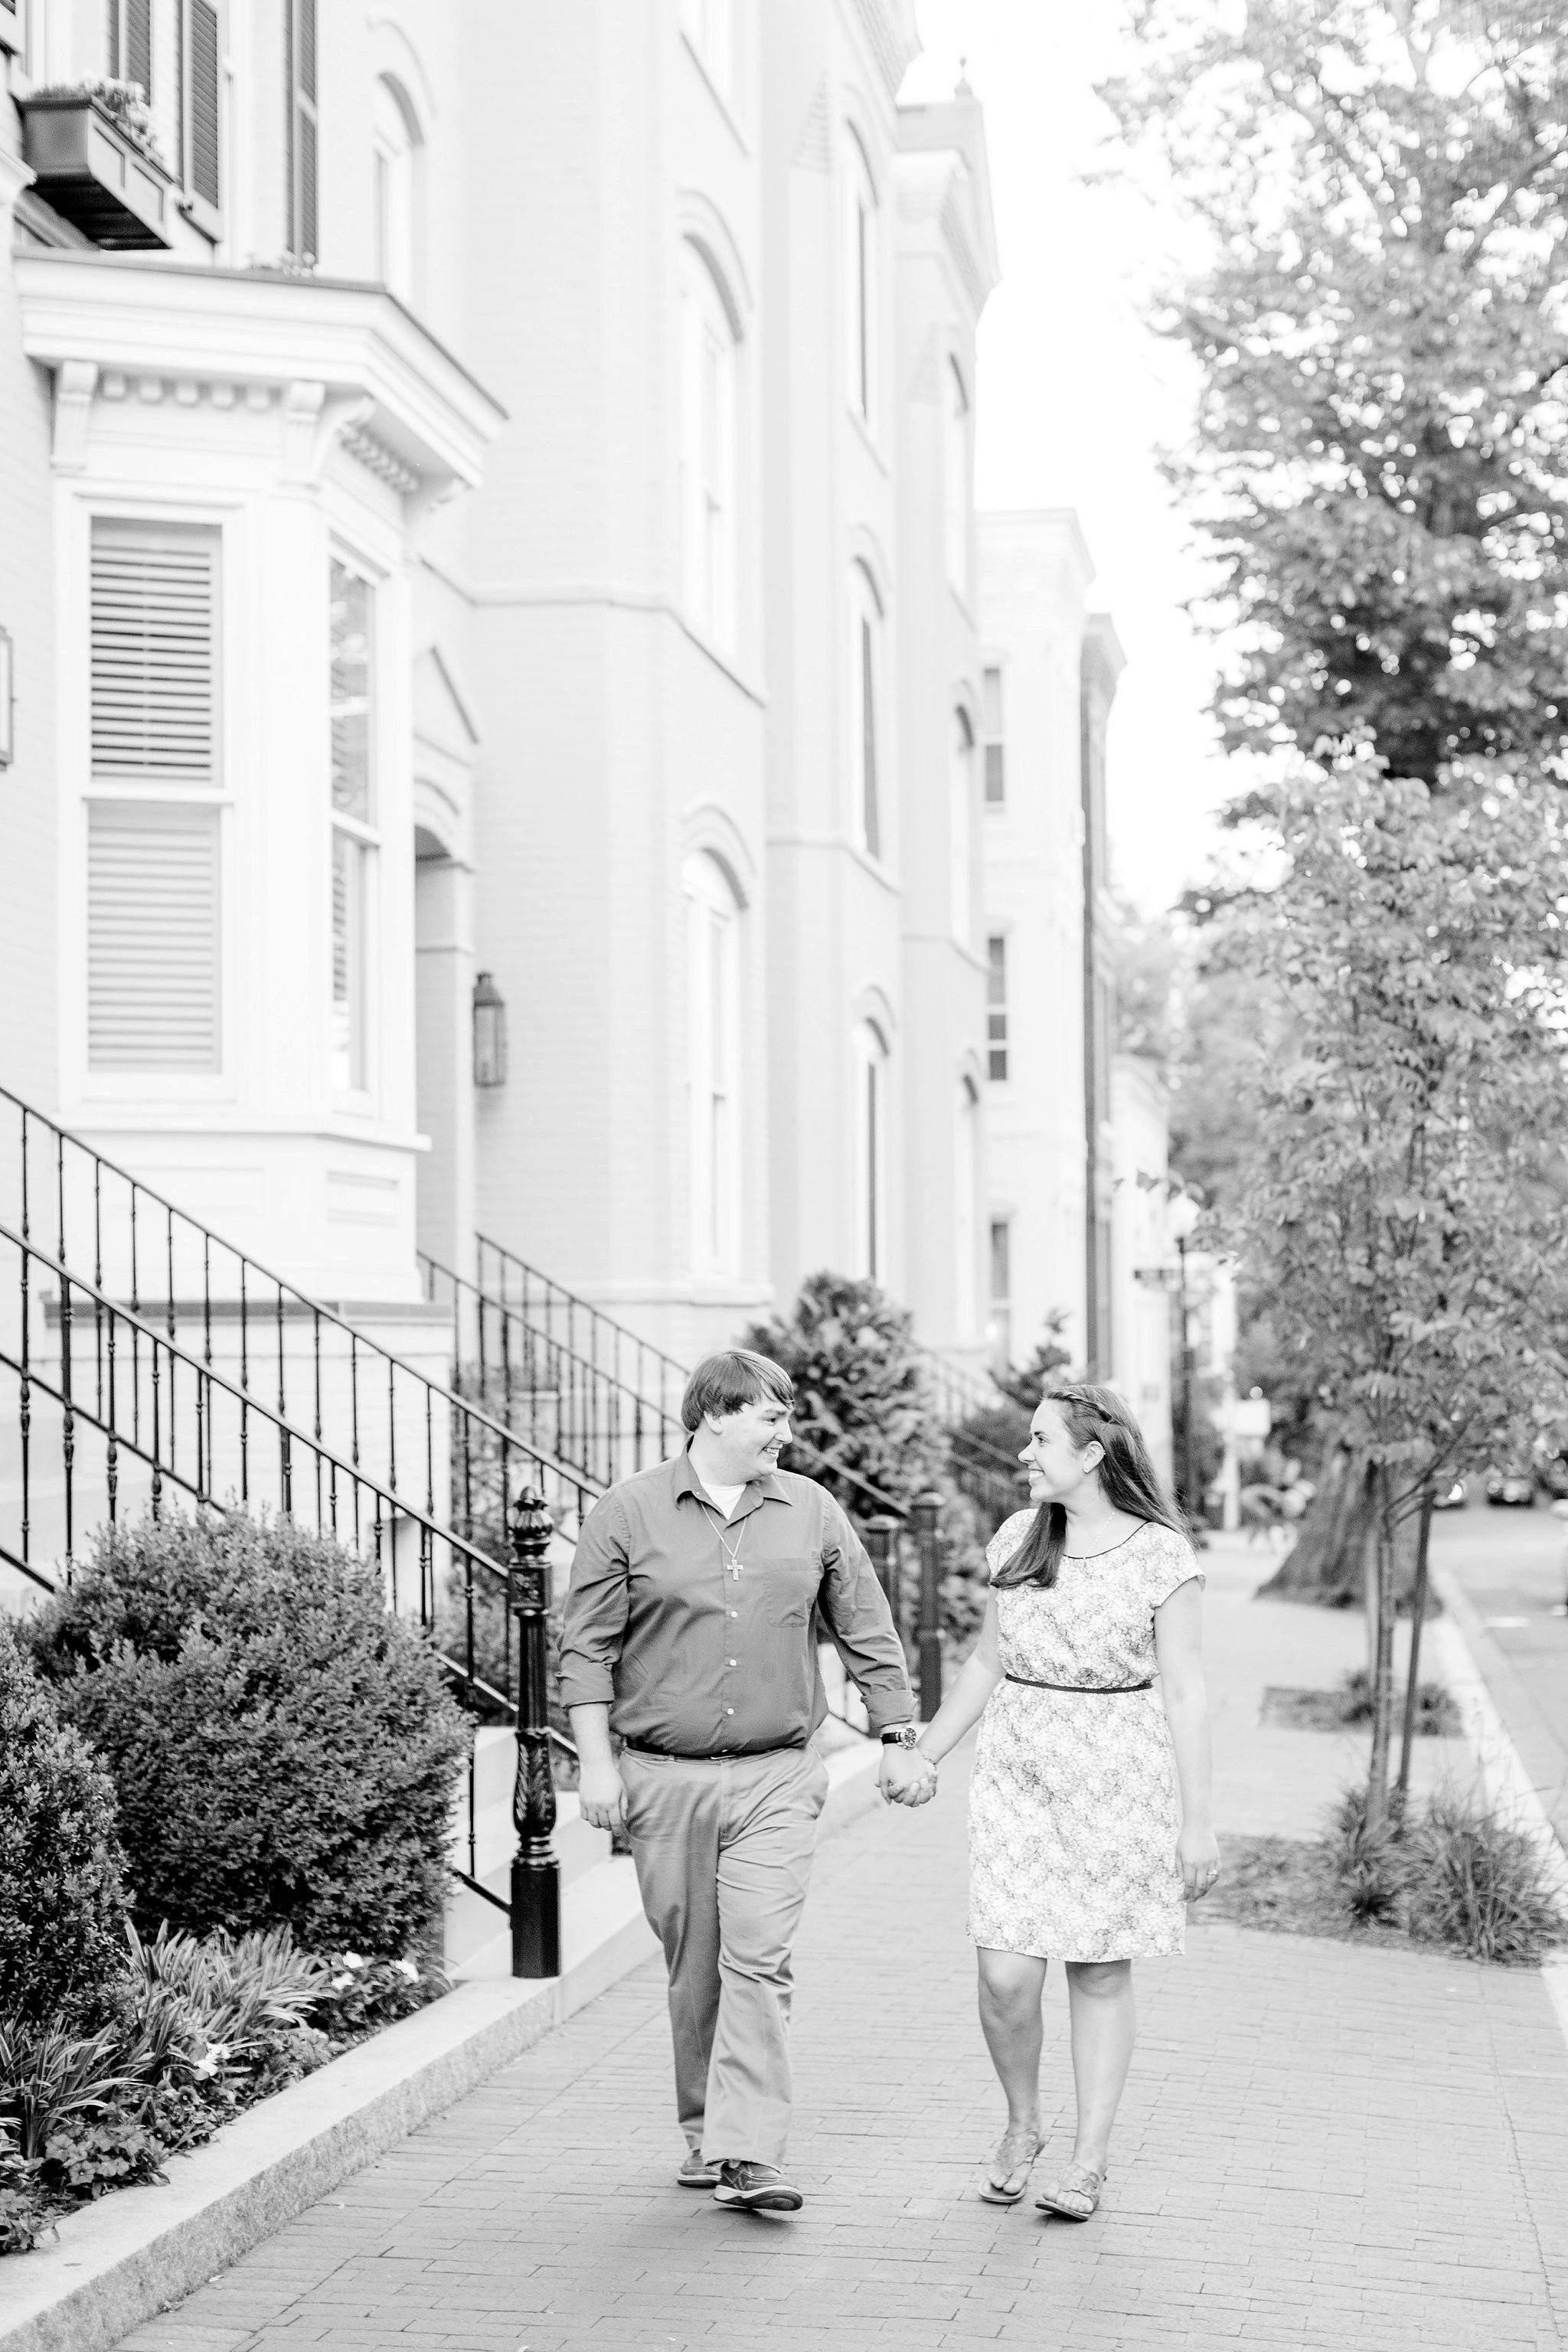 Georgetown Engagement Photography Lindsay & Joey DC Wedding Photographer-1866-2.jpg